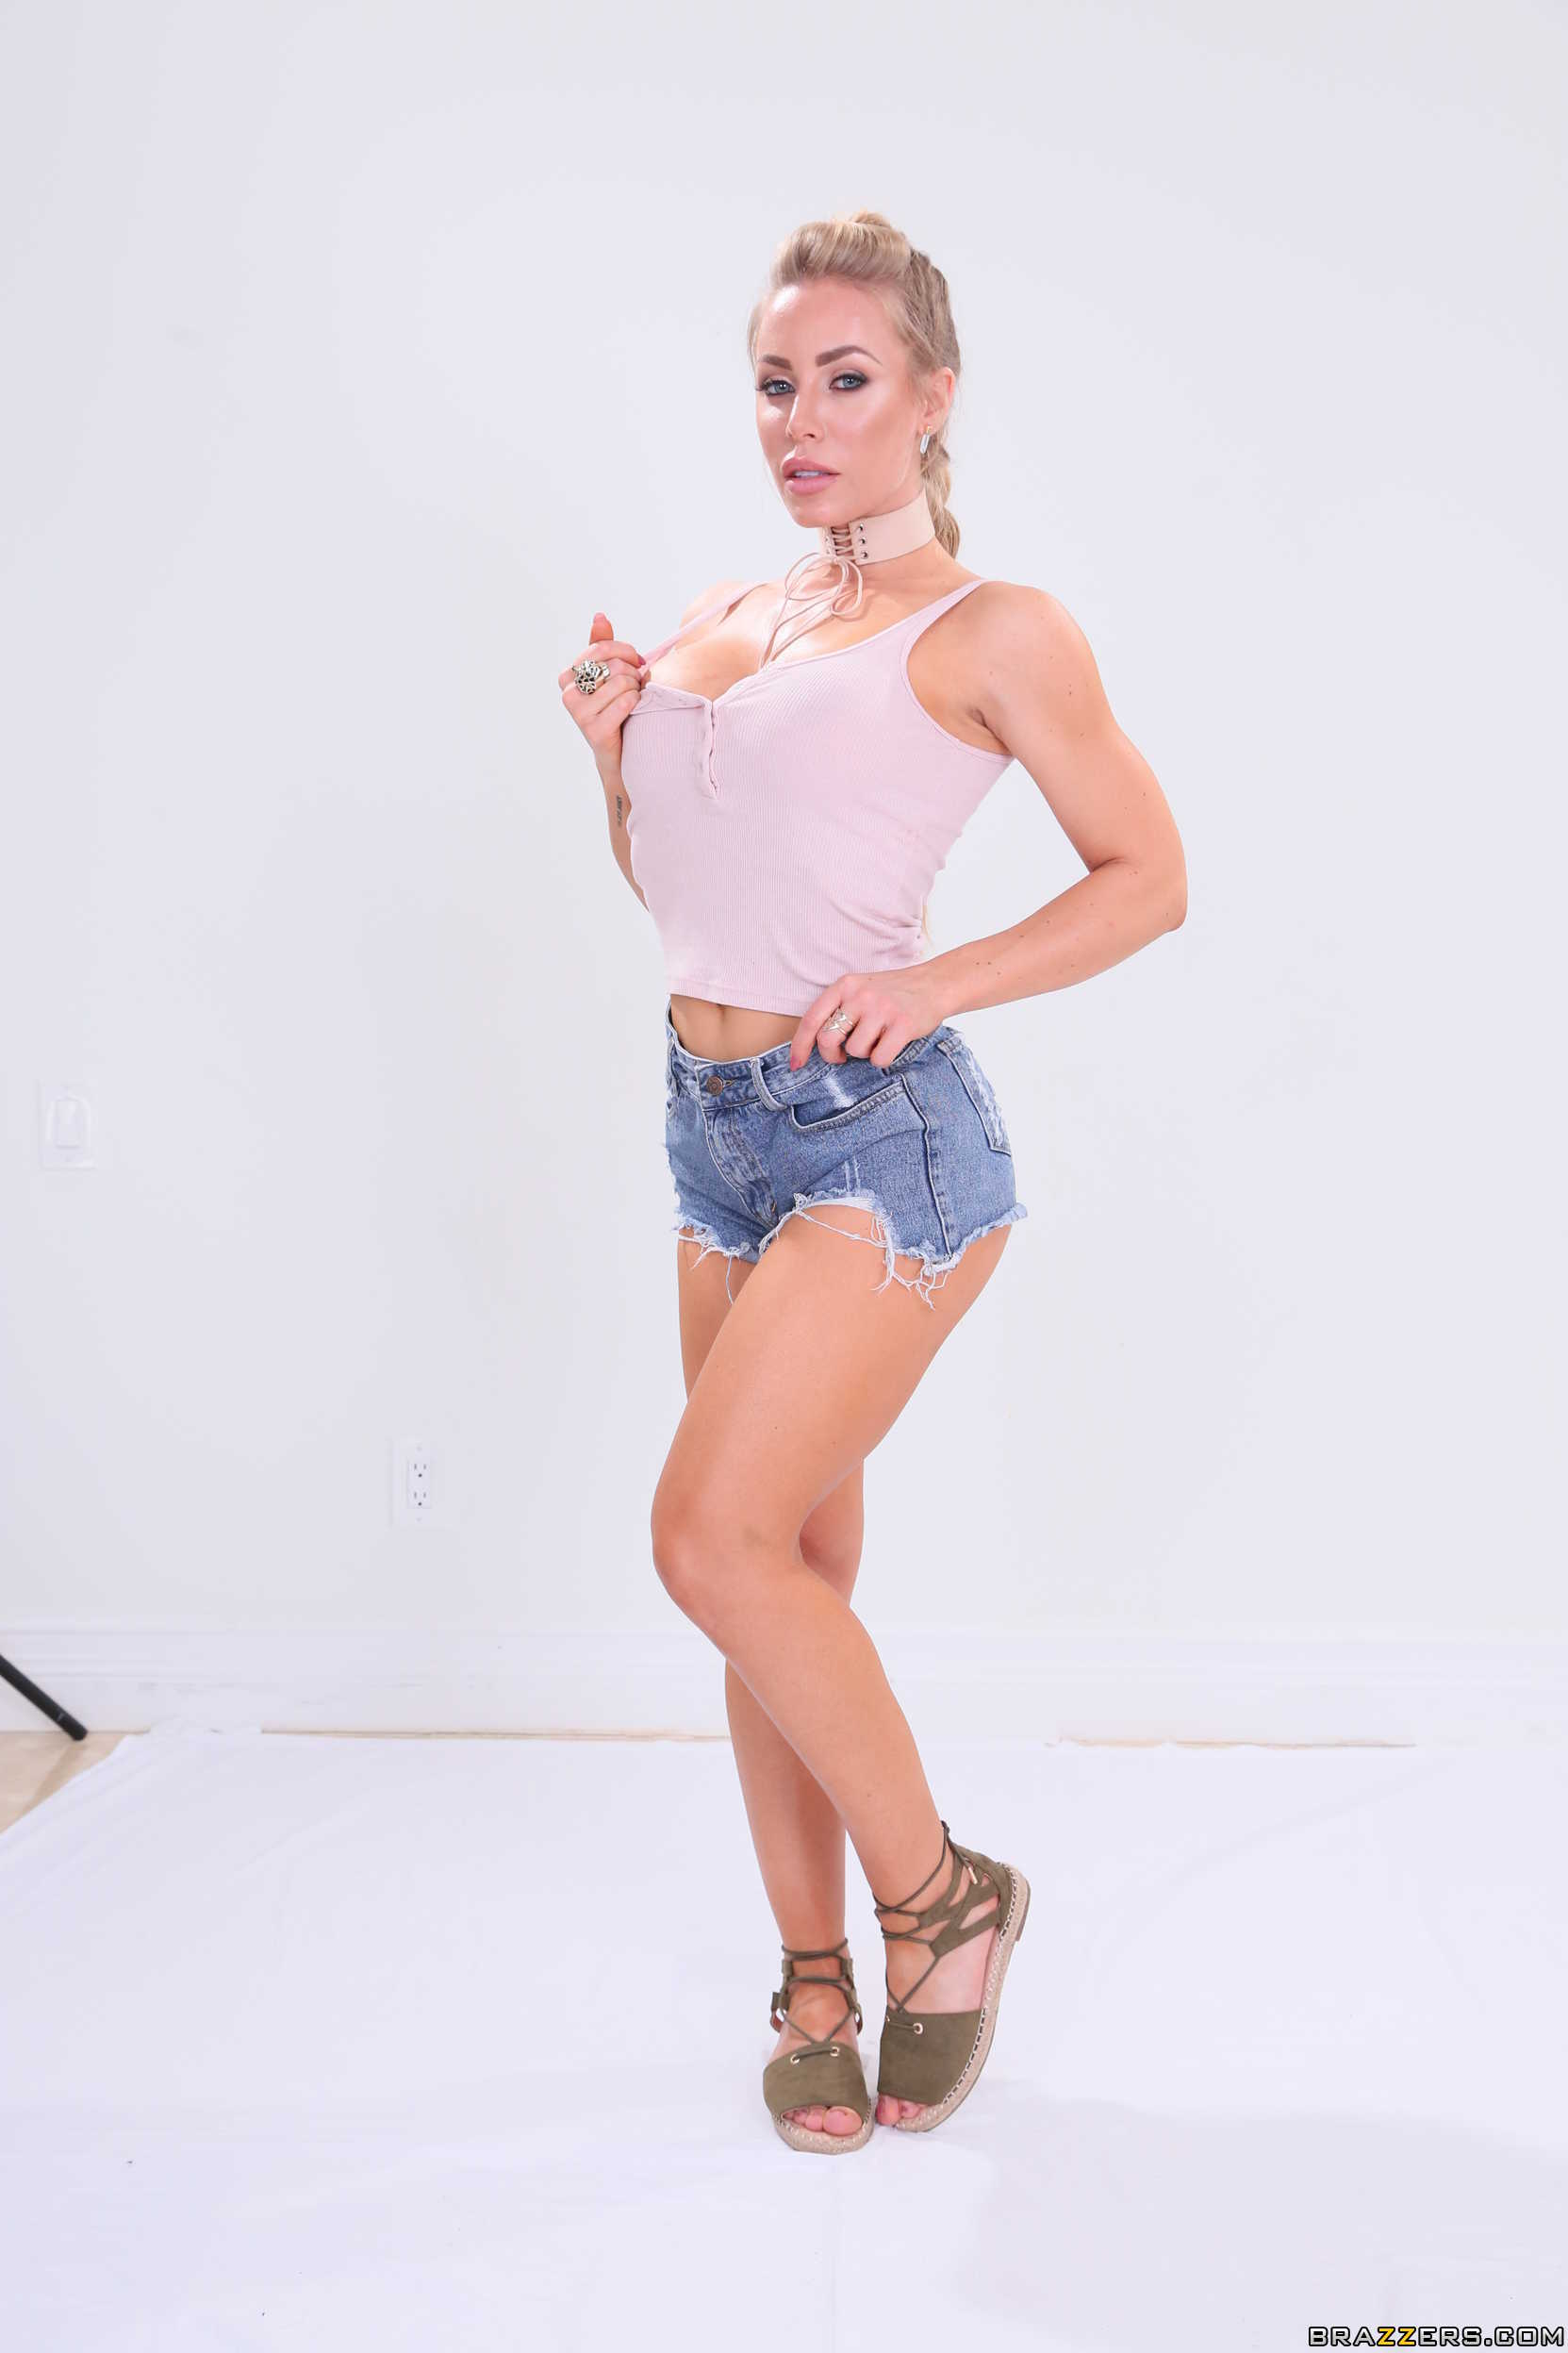 Nicole Aniston Brazzers House 2: Day 1 Part 1【Chica